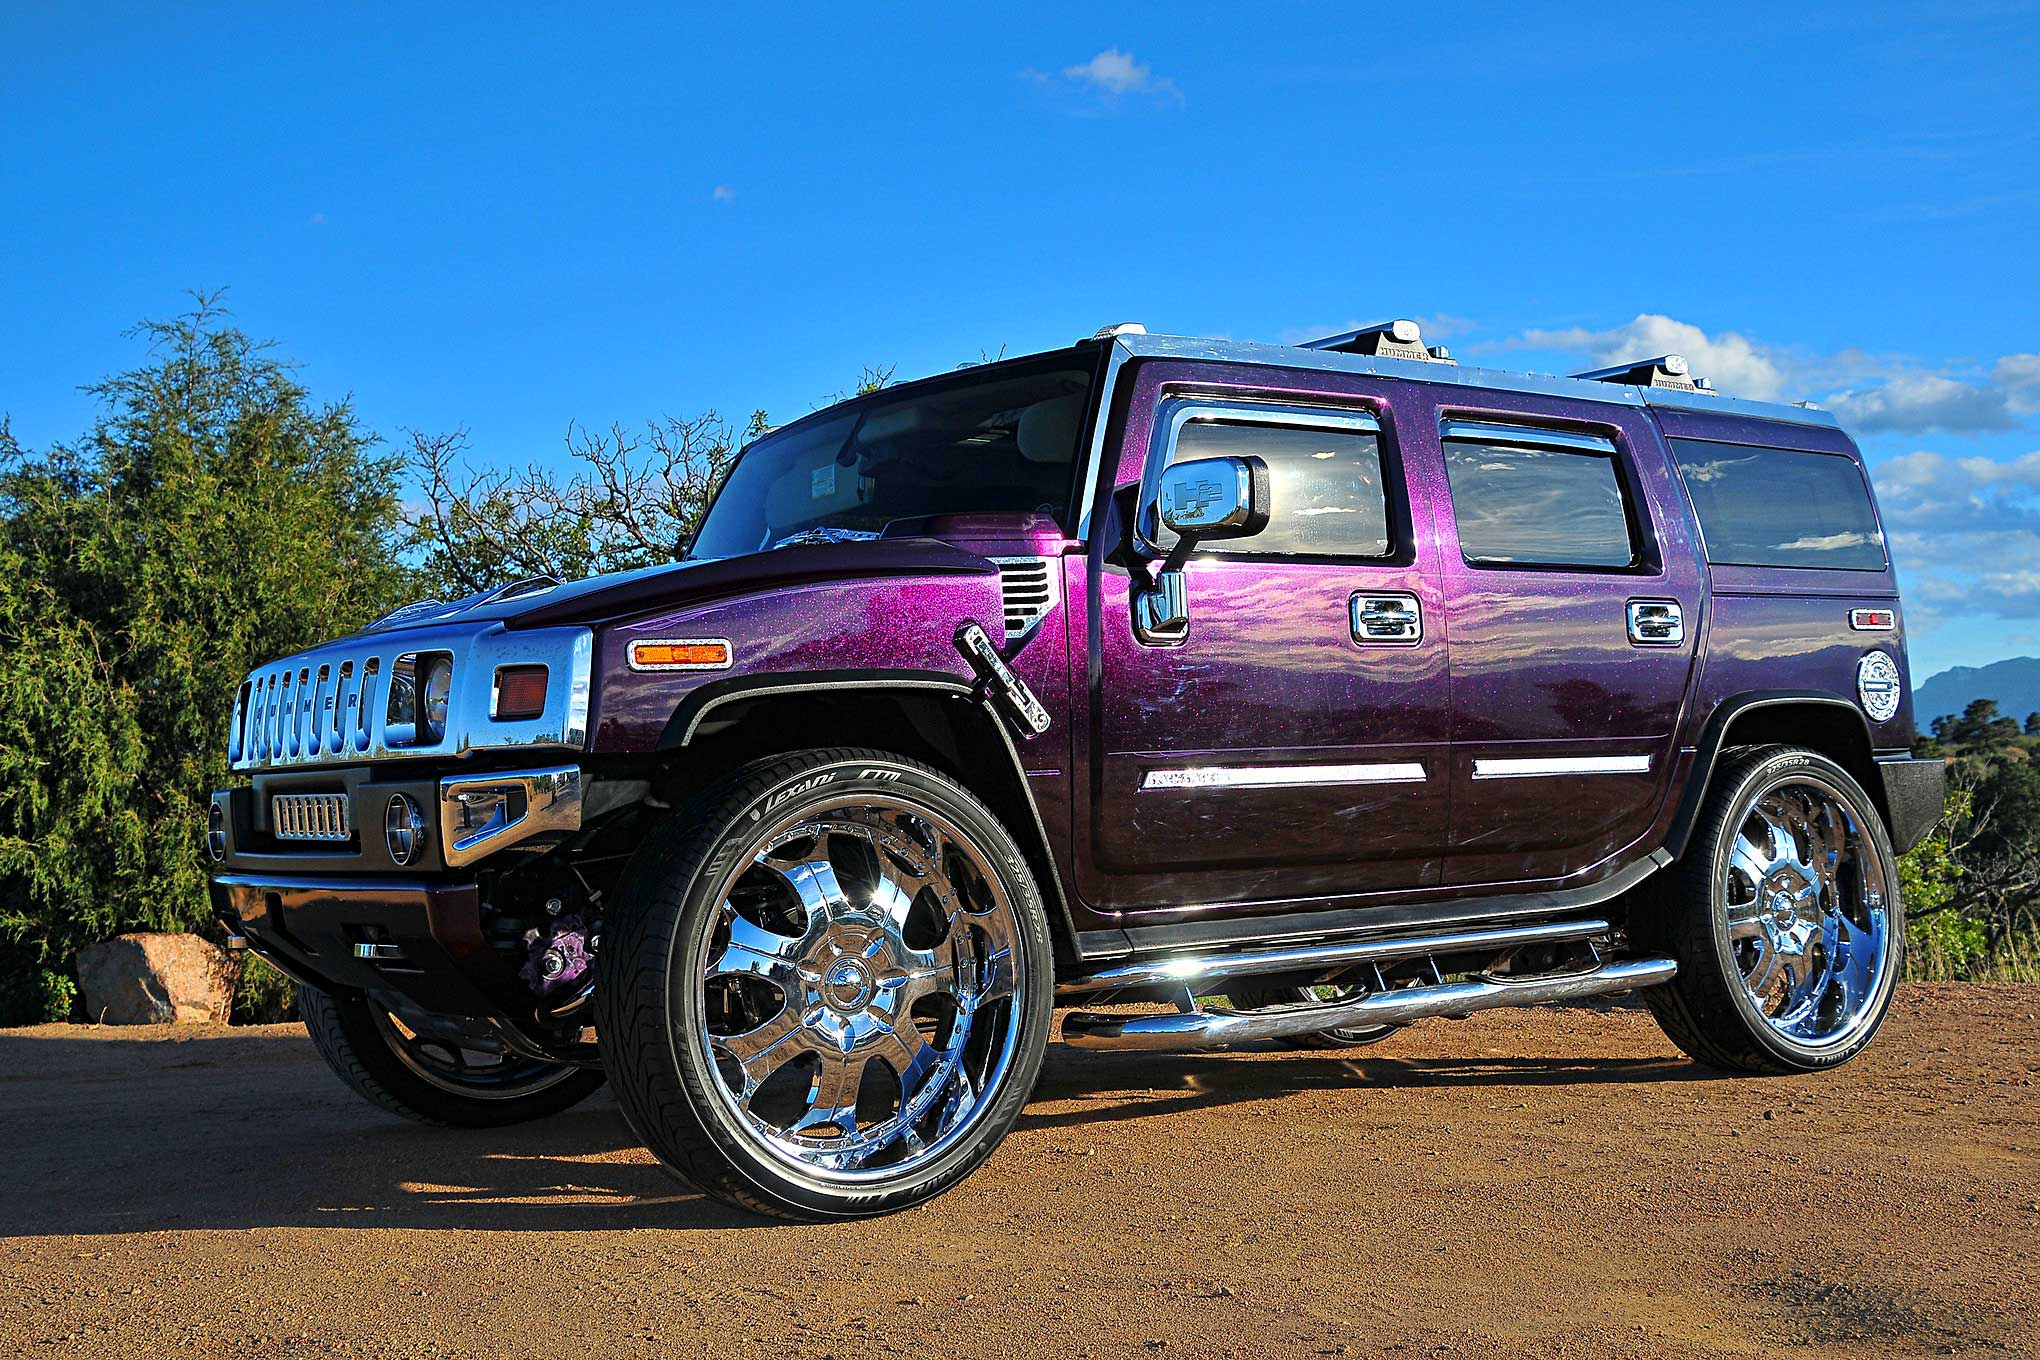 Hummers For Sale >> 2005 Hummer H2 - Anything is Possible